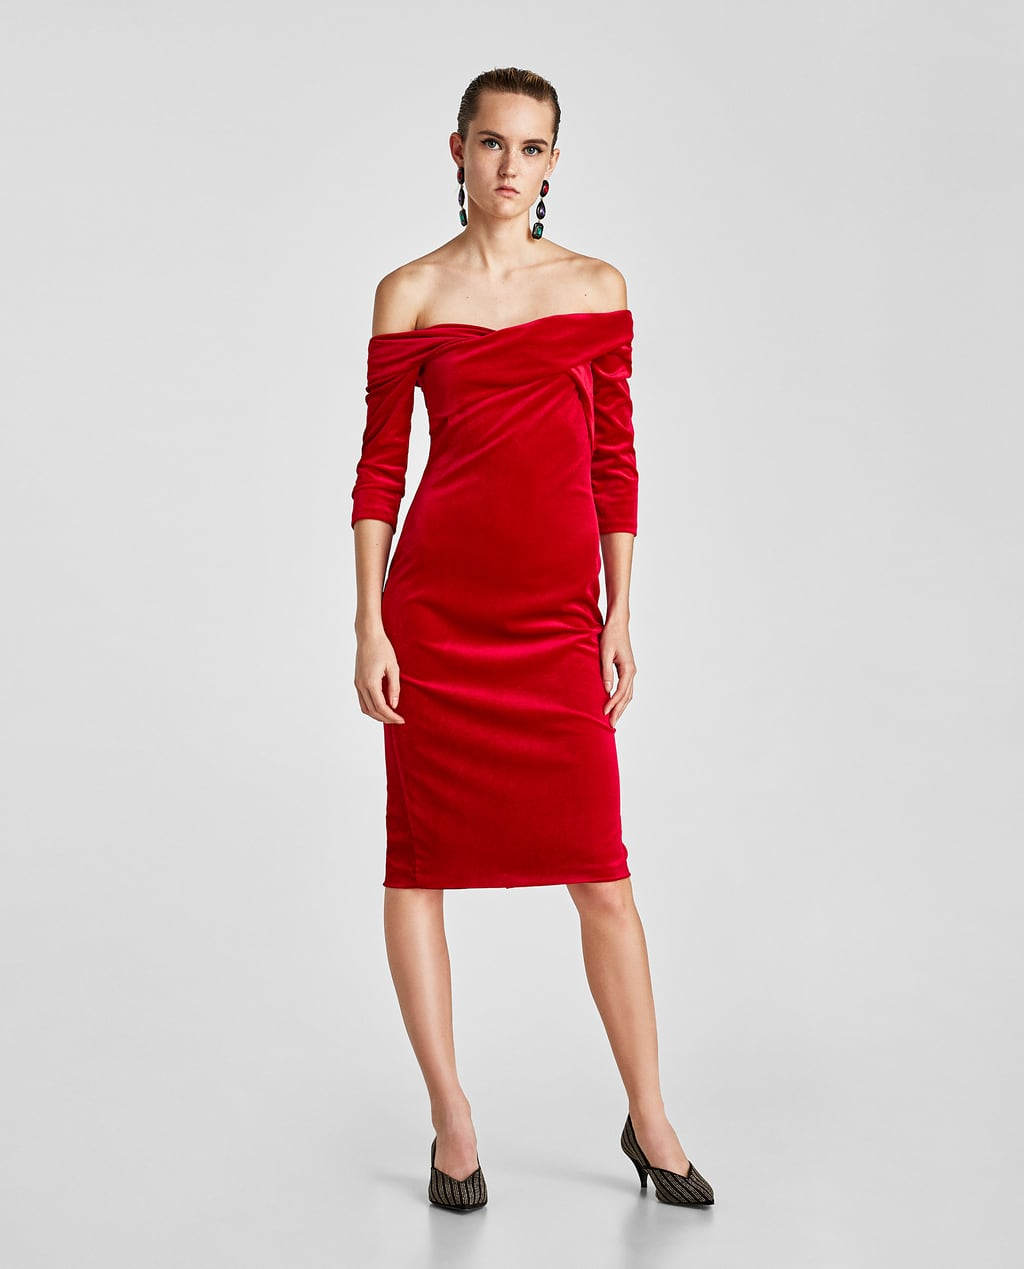 Cocktail Attire for Women: What to Wear to a Cocktail Party ...